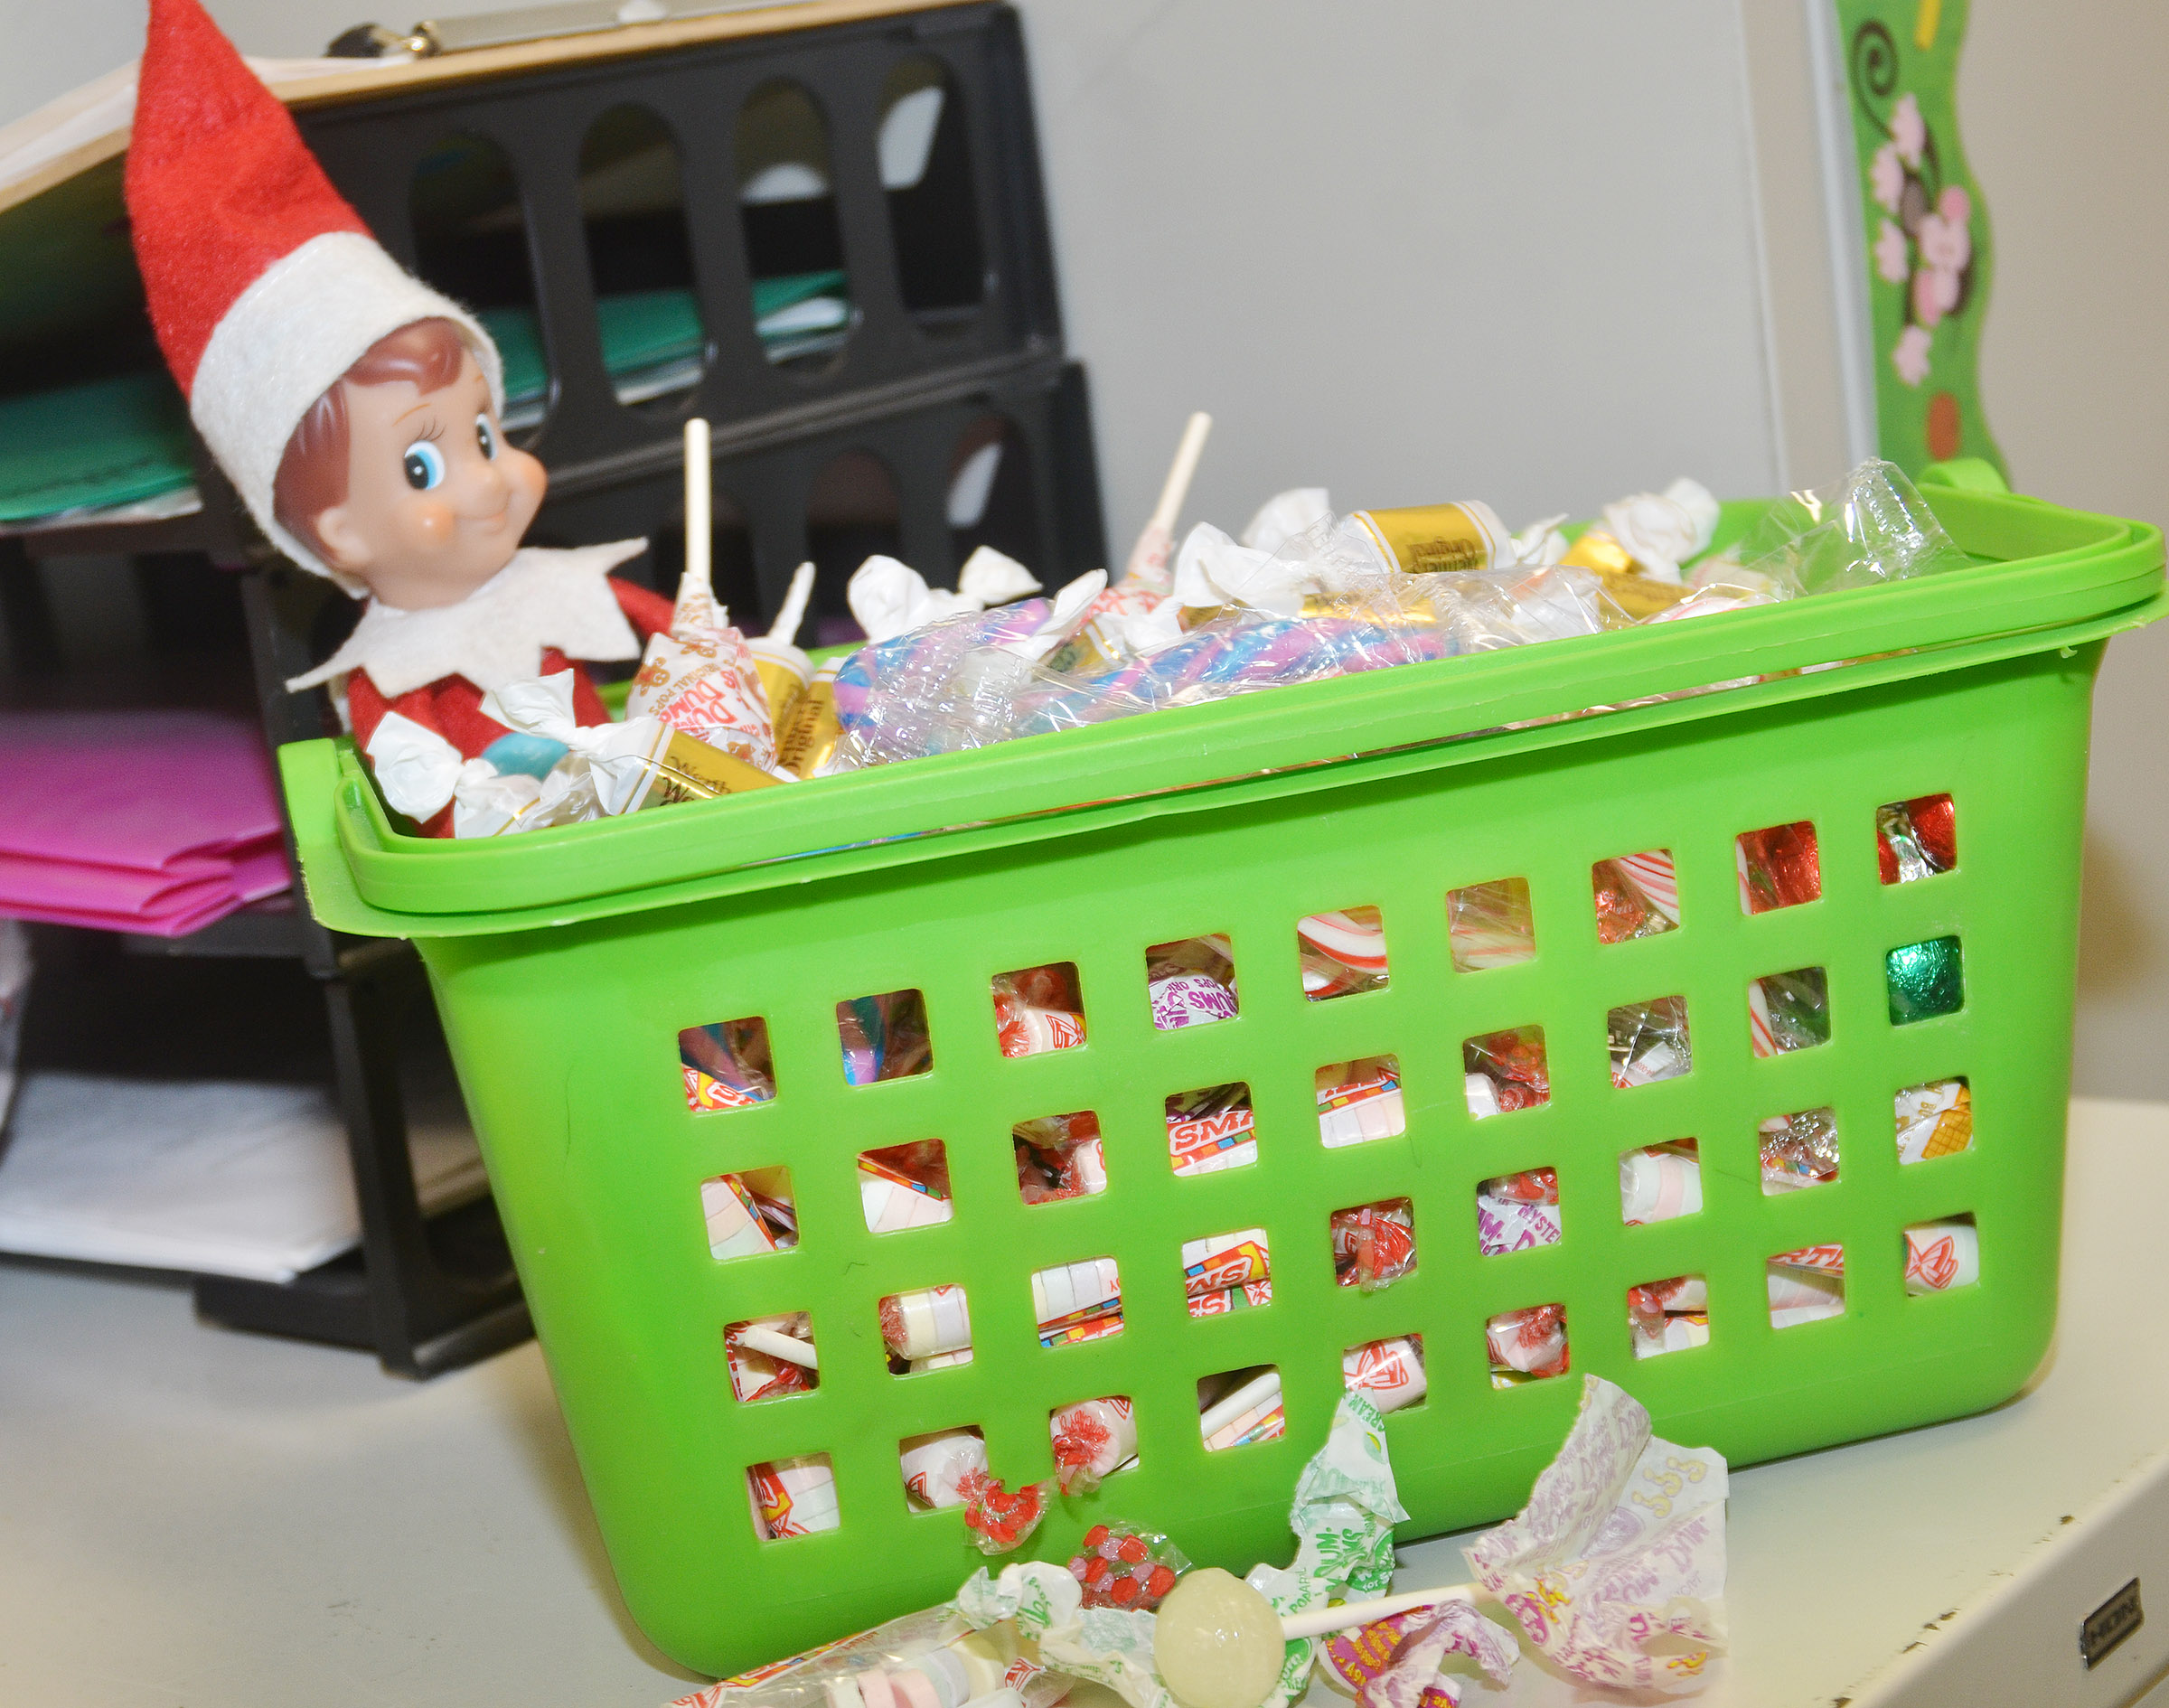 Elves recently created some messes at CES. This elf helped himself to a classroom candy basket.